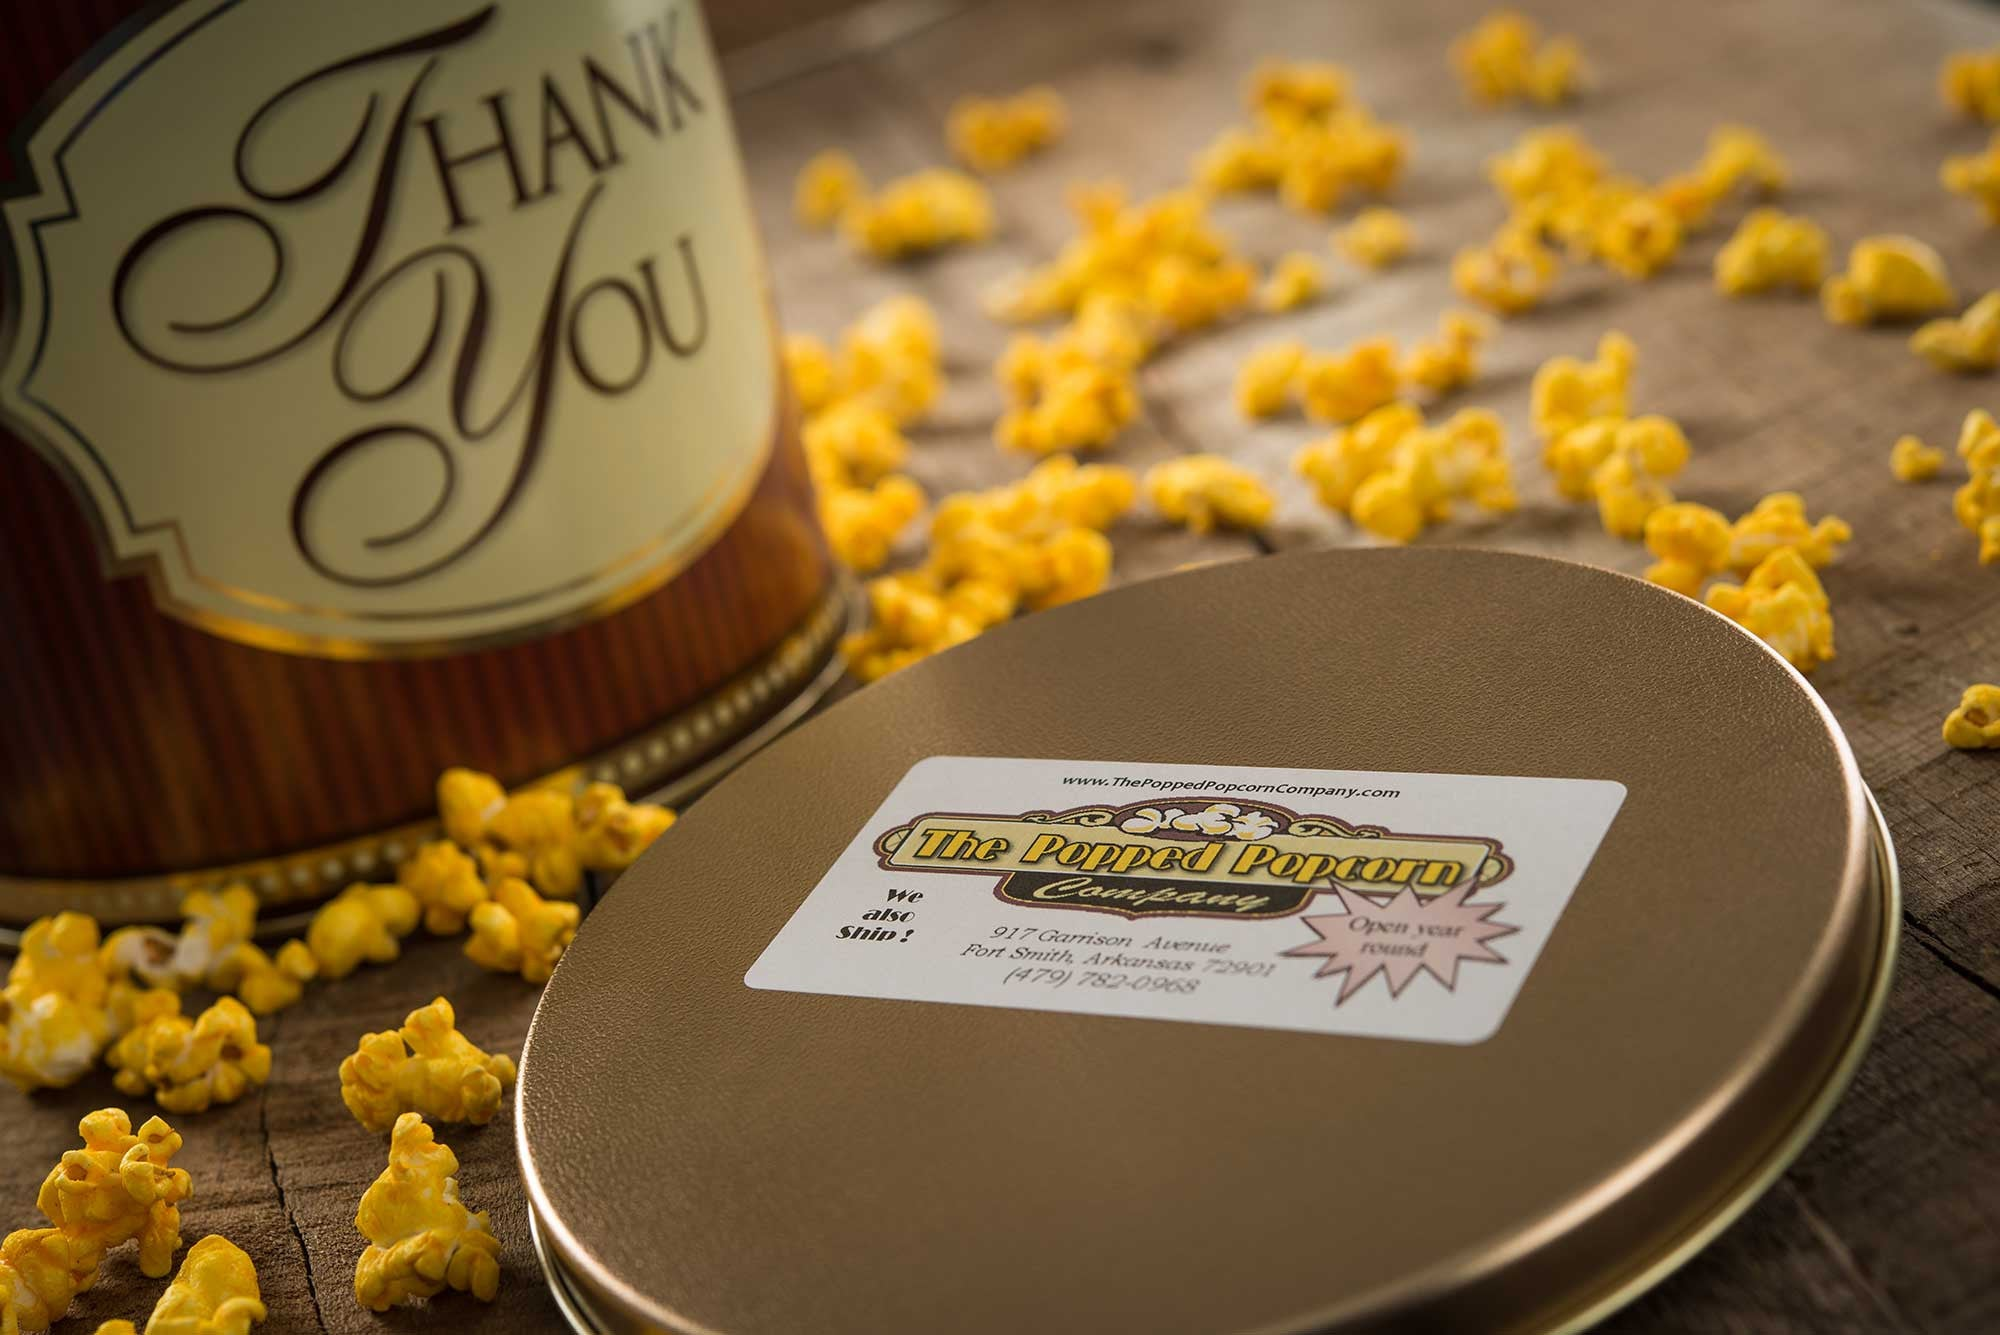 Real customers share their experiences, ratings, testimonials & reviews of buying our fresh, gourmet flavored popcorn online & having it shipped to their door.